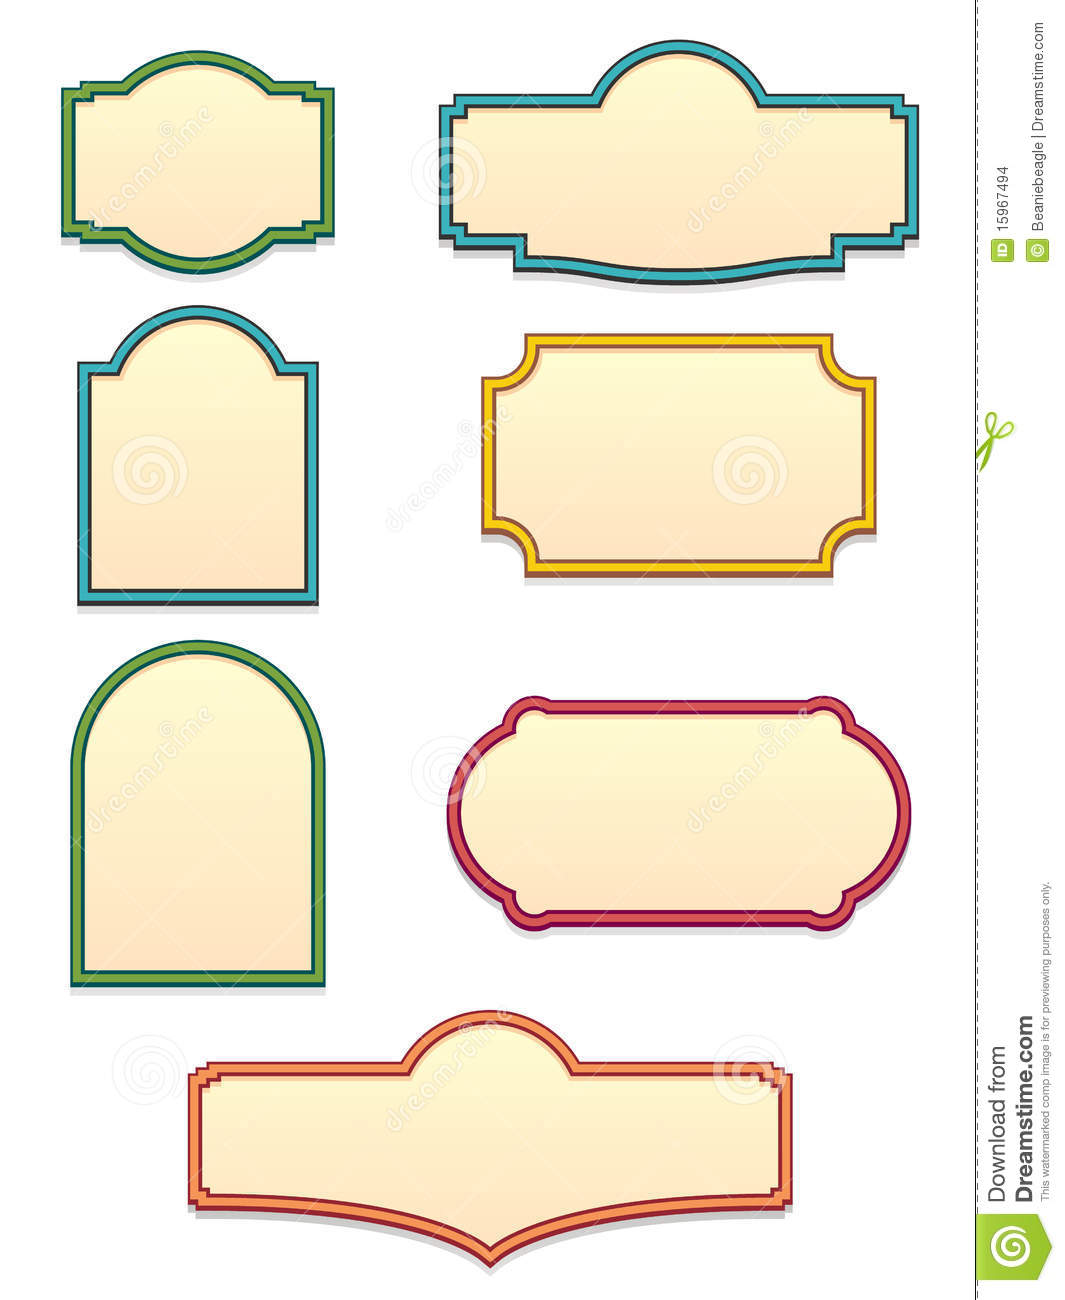 12 Vector Sign Shapes Images